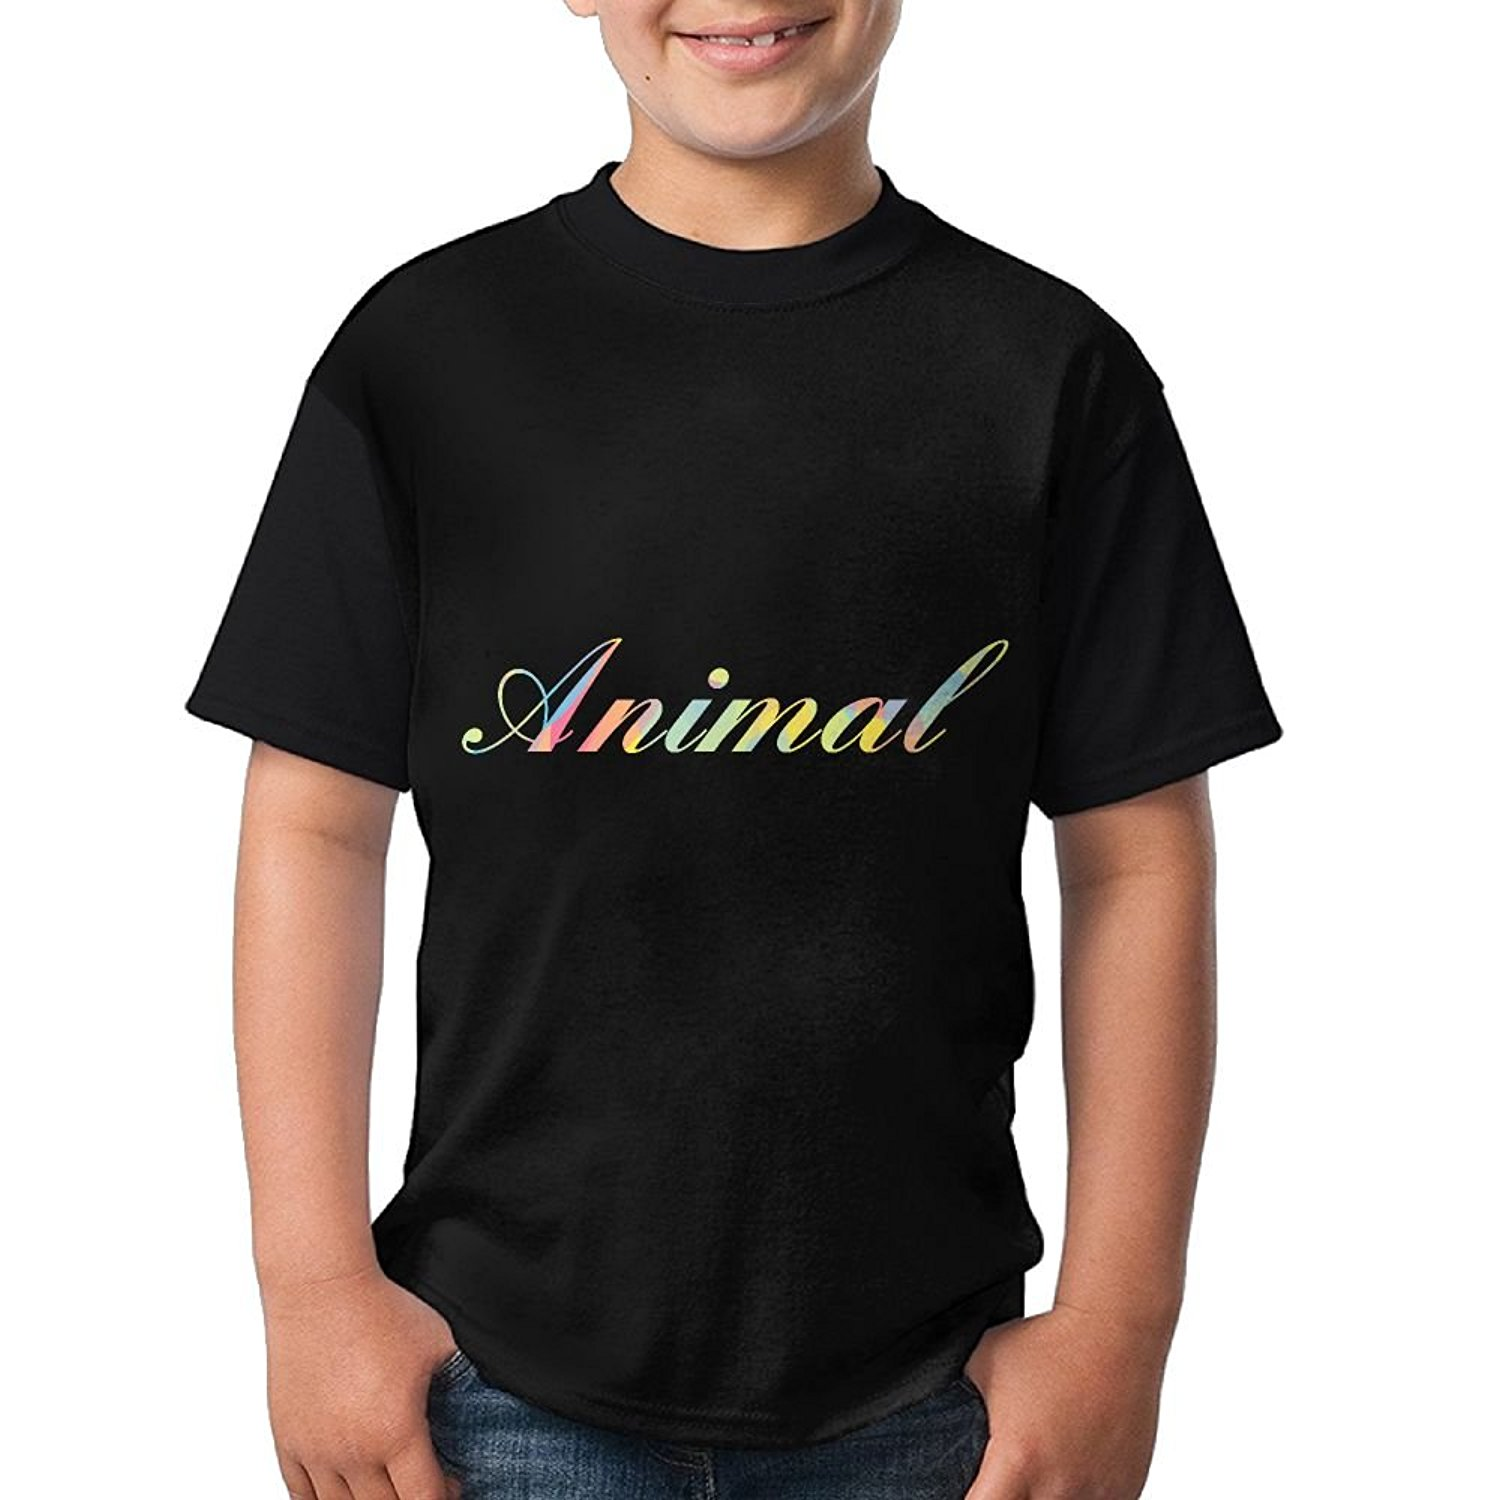 Cheap Sweat Proof T Shirt Find Sweat Proof T Shirt Deals On Line At